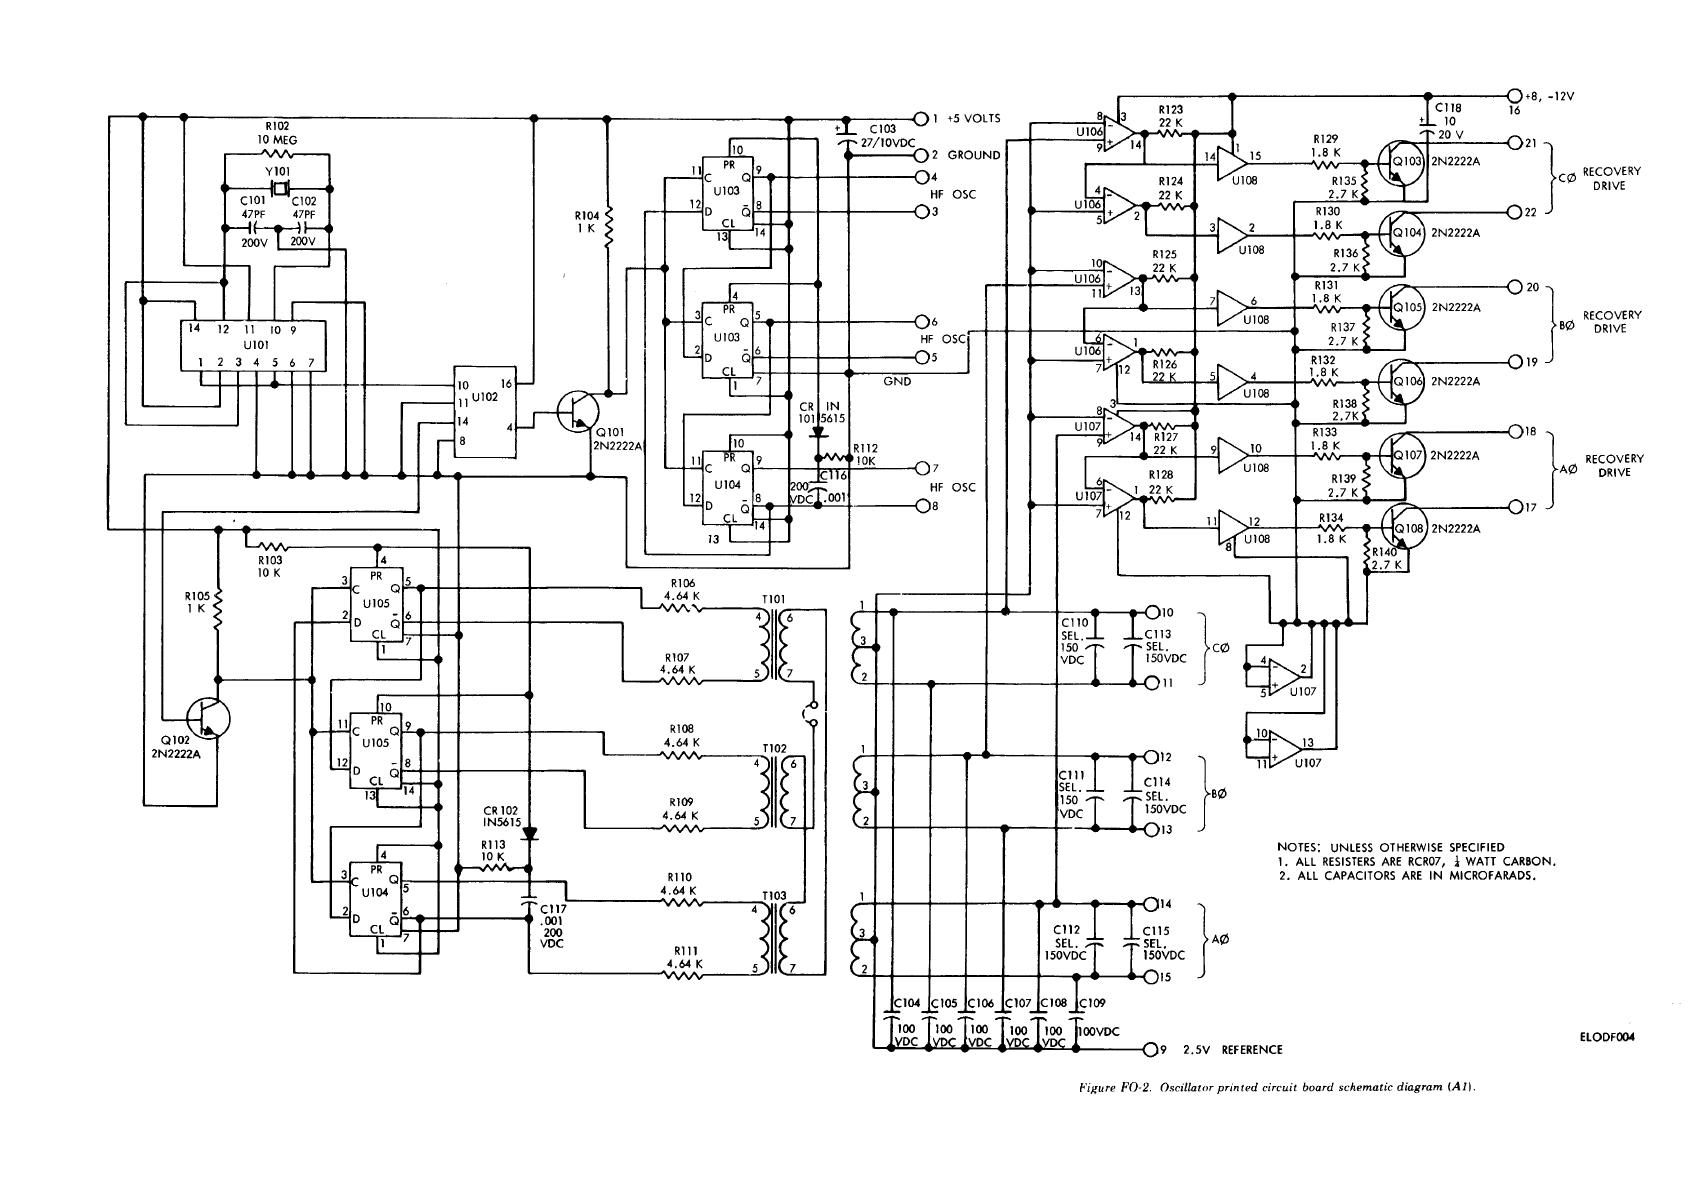 printed circuit board diagram  u2013 ireleast  u2013 readingrat net